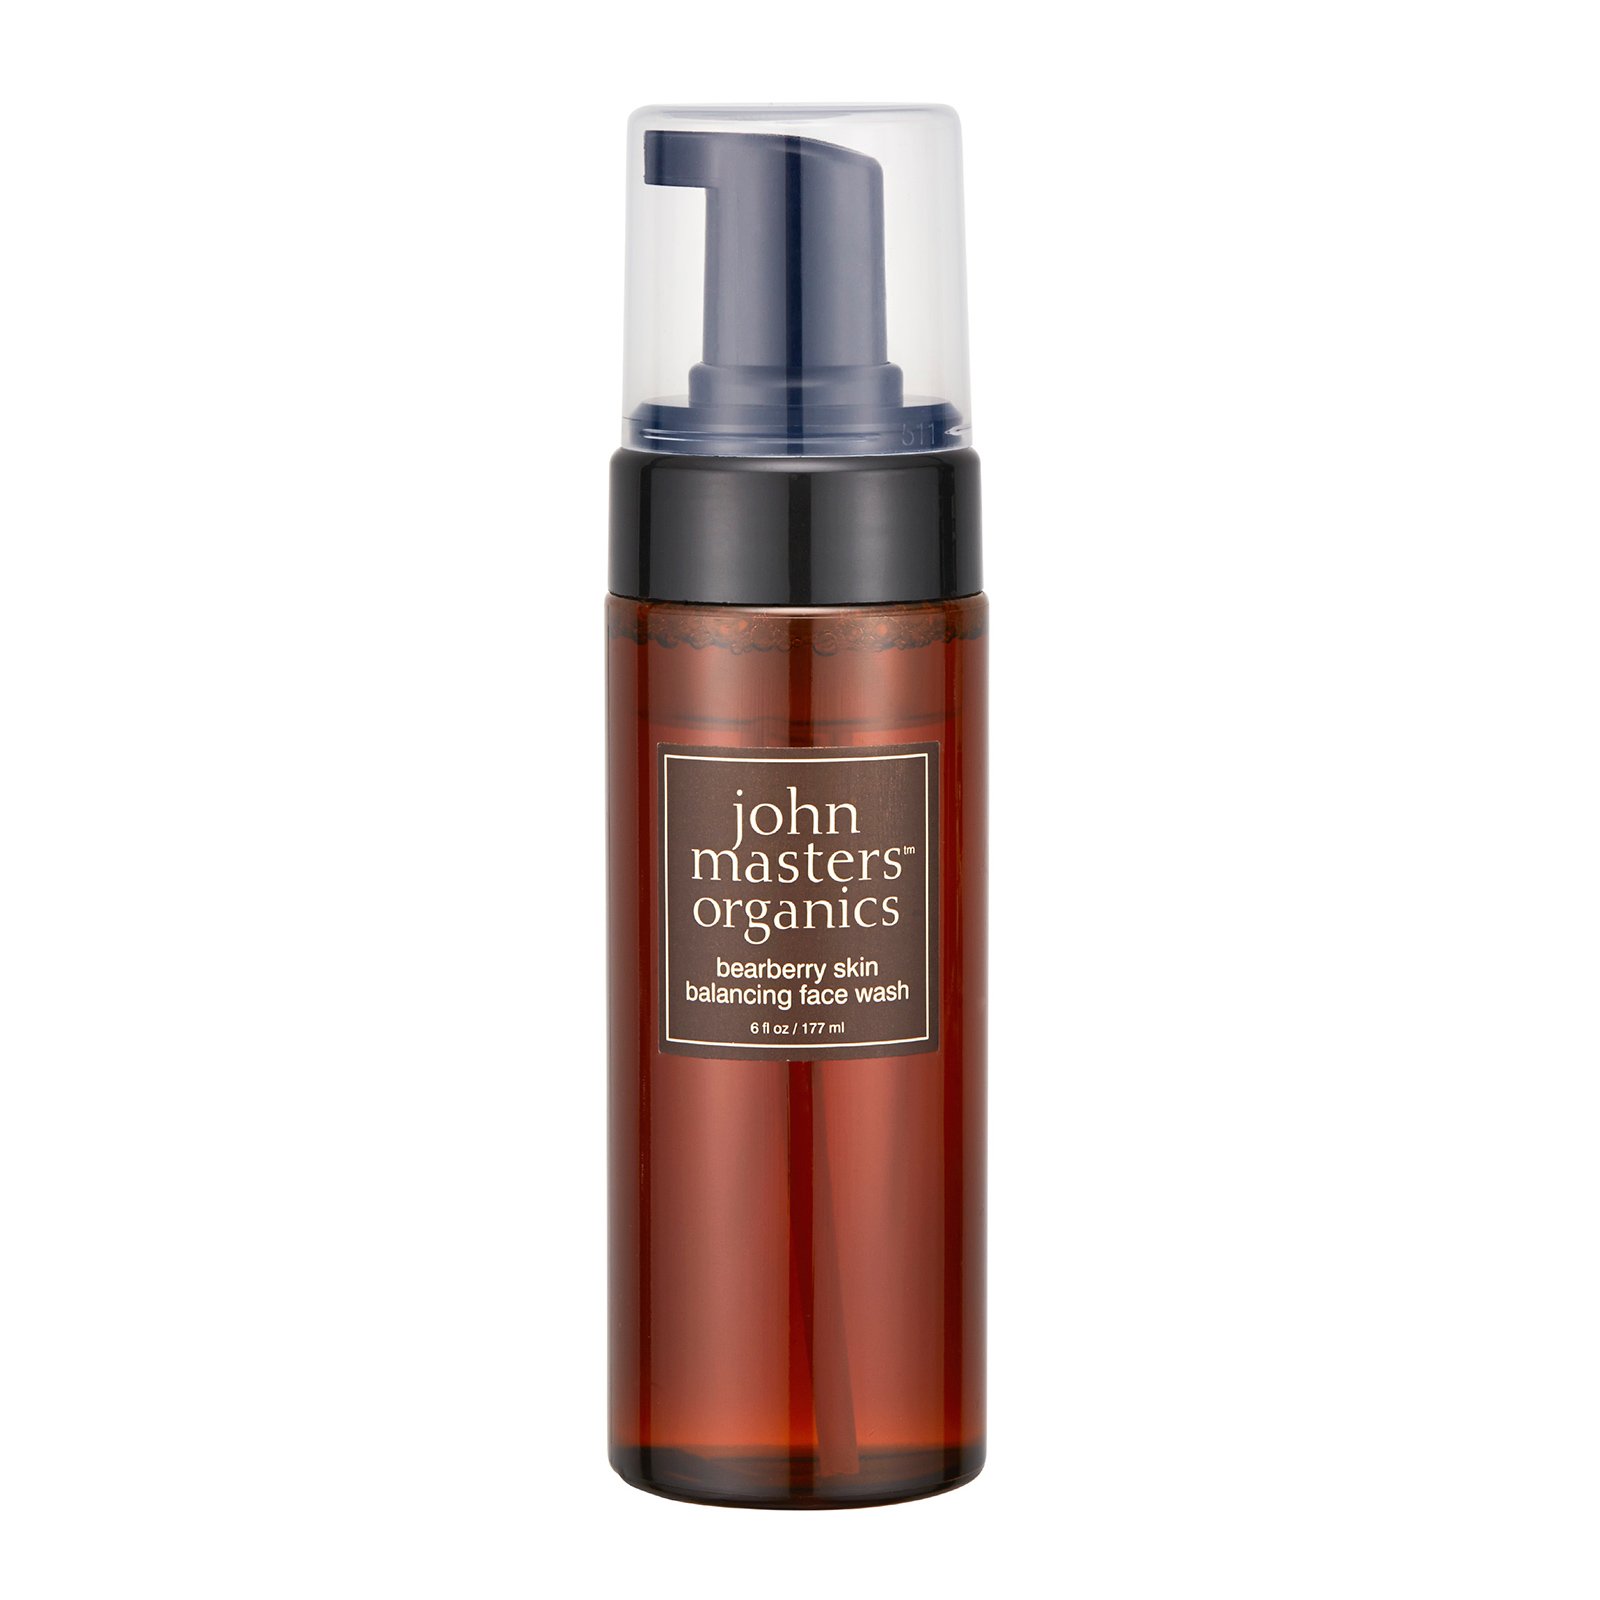 John Masters Organics  Bearberry Oily Skin Balancing Face Wash (Oily / Combination) 6oz, 177ml